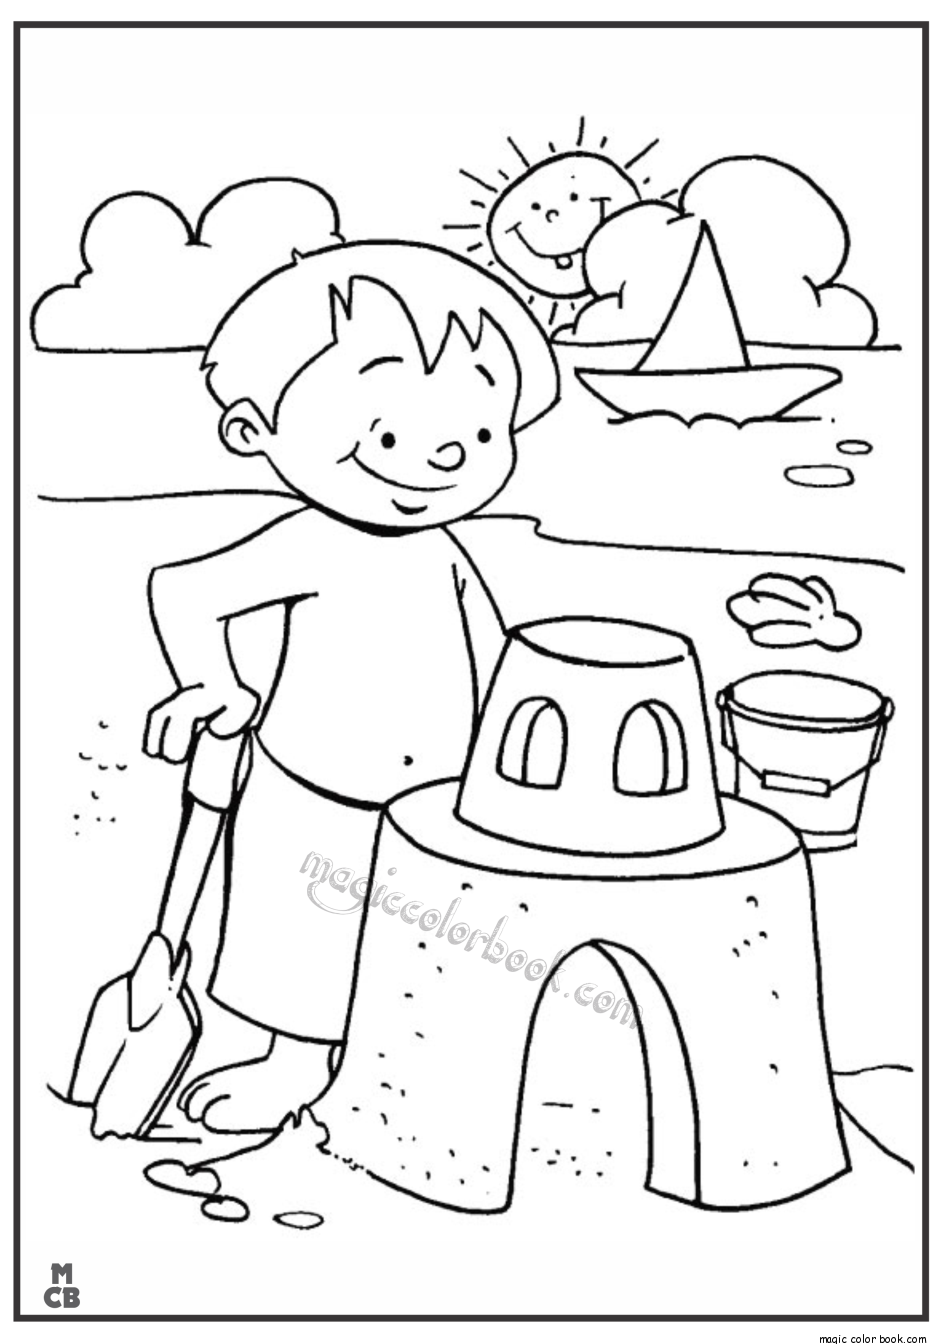 945x1344 Printable Ocean Coloring Pages For Kids Top Butterfly Online Fun